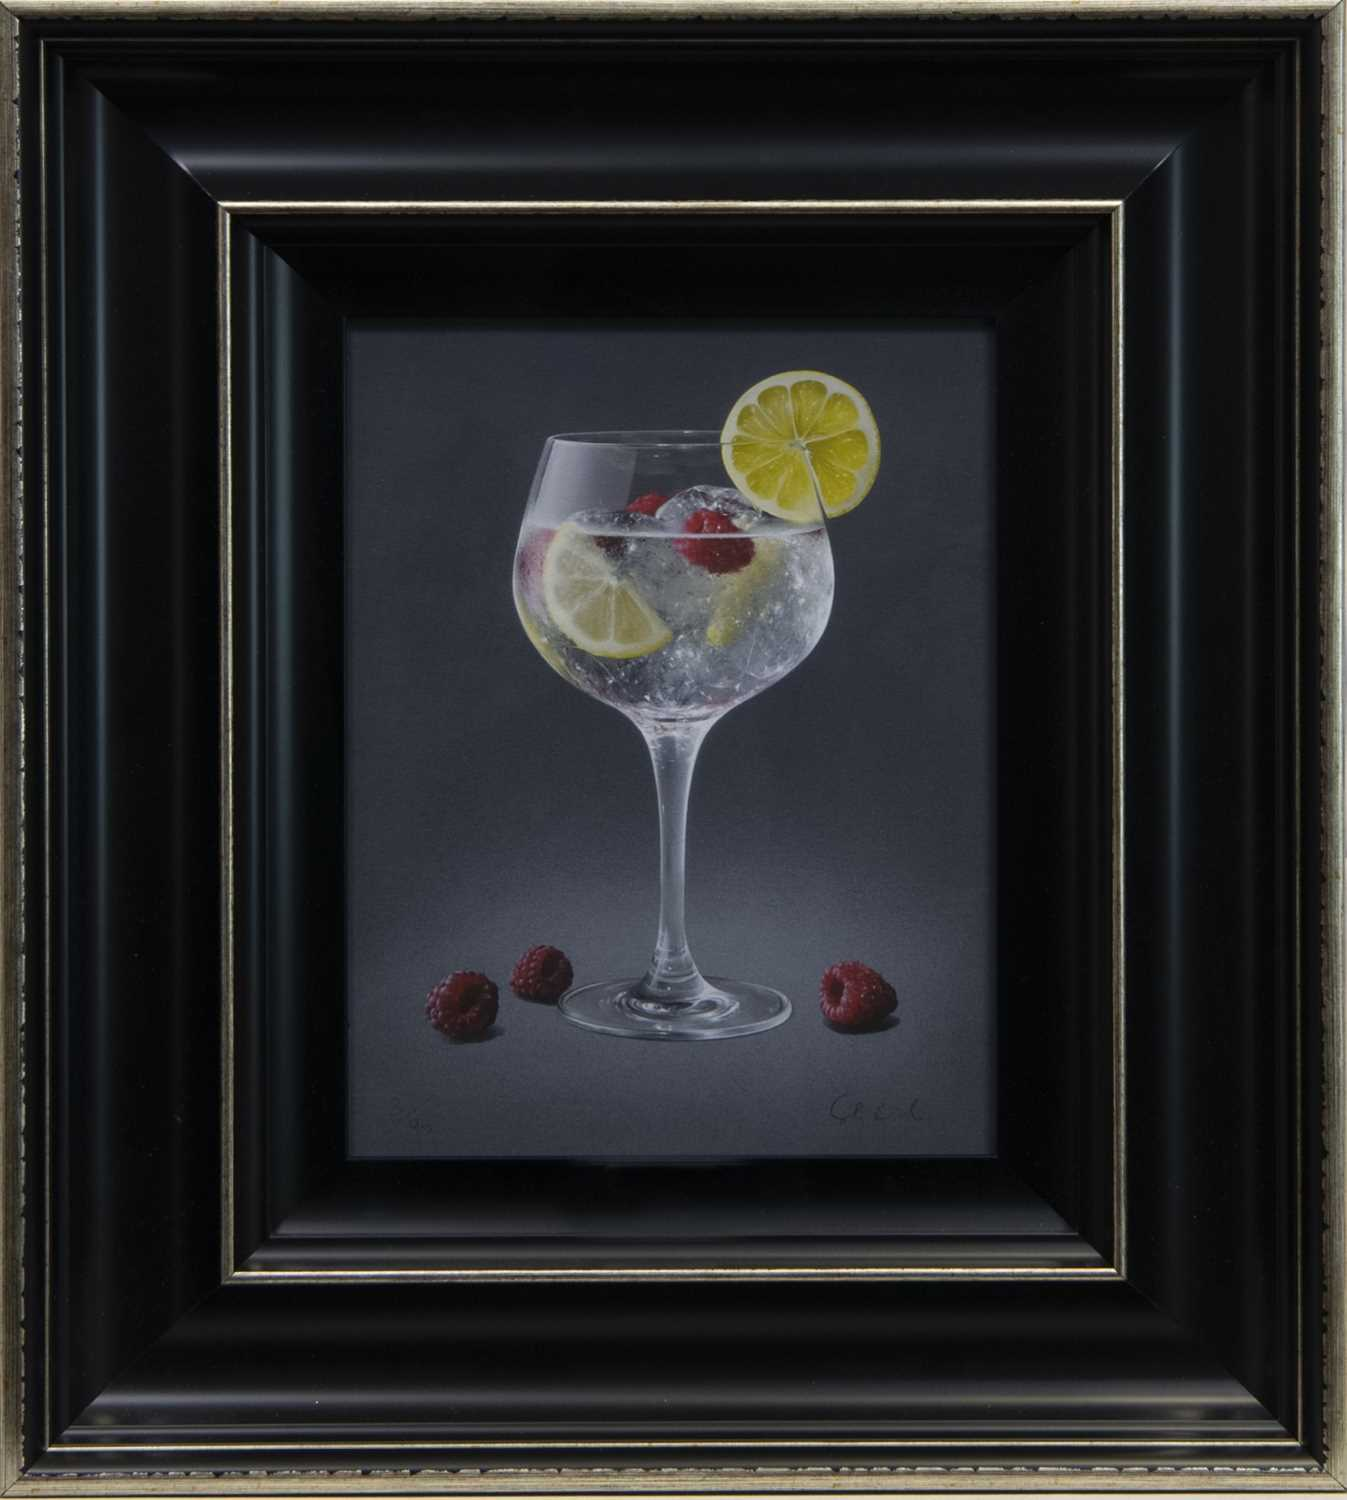 Lot 102 - ICED LEMON & RASPBERRIES, A PRINT BY COLIN WILSON